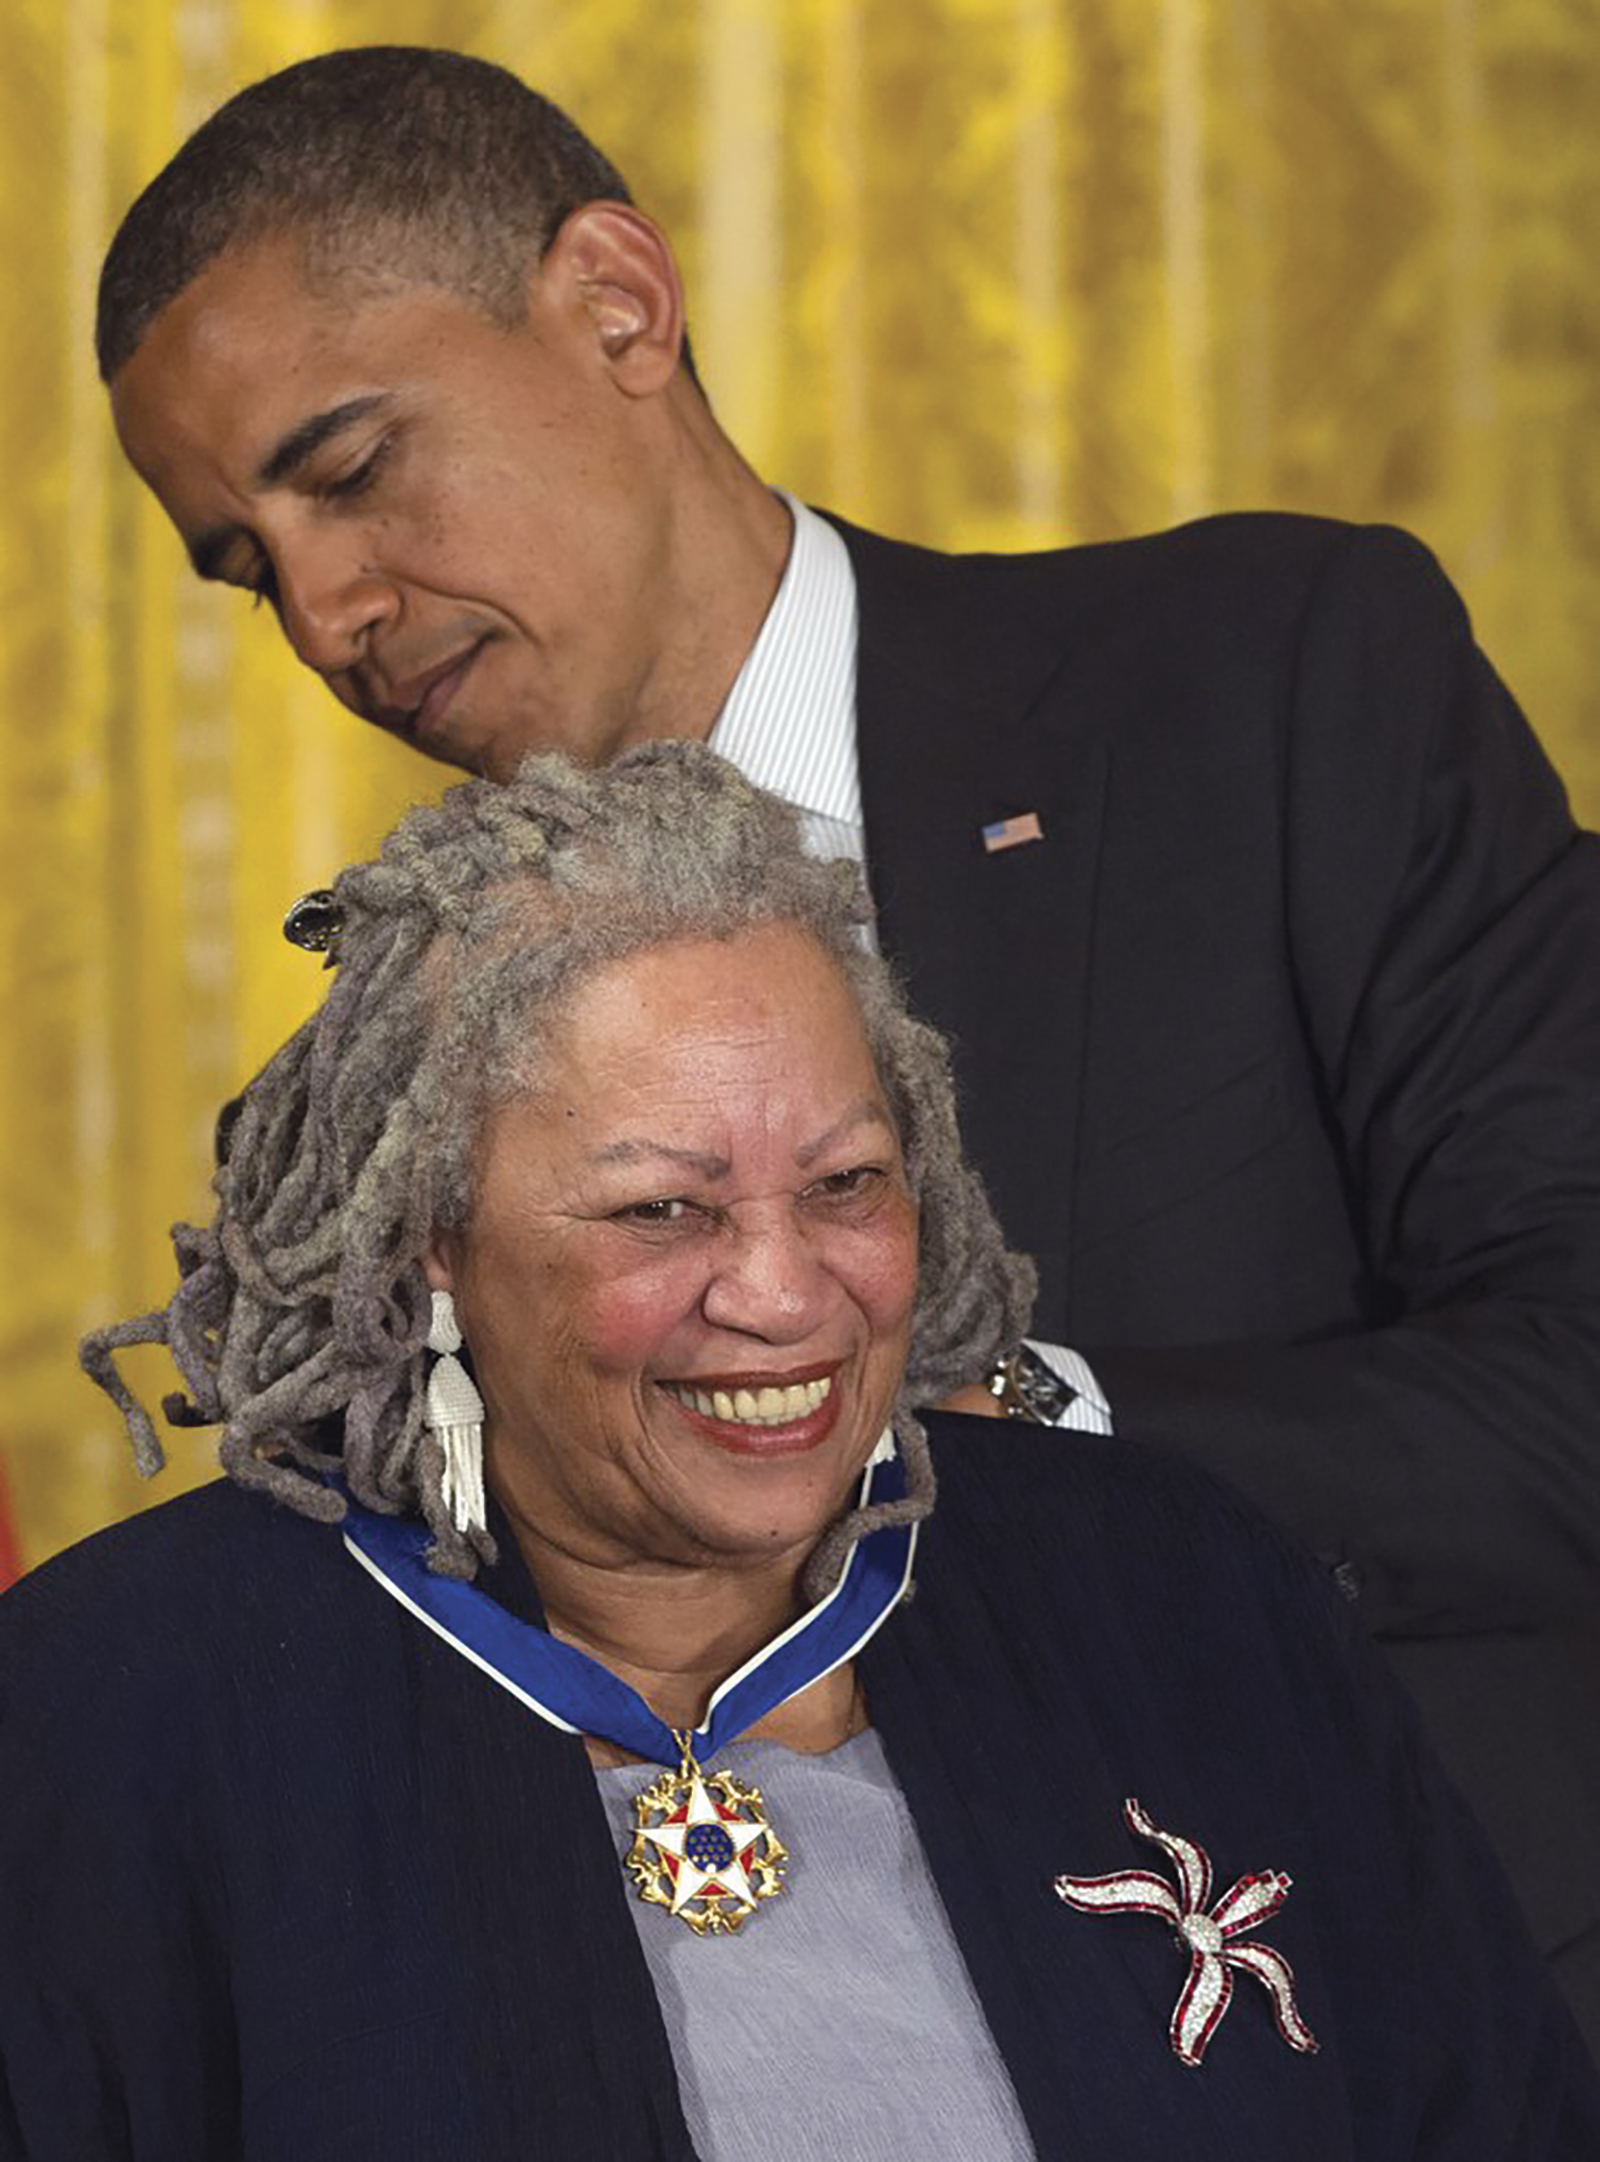 FILE - In this May 29, 2012 file photo President Barack Obama awards author Toni Morrison with a Medal of Freedom, during a ceremony in the East Room of the White House in Washington. The Nobel Prize-winning author has died. Publisher Alfred A. Knopf says Morrison died Monday, Aug. 5, 2019 at Montefiore Medical Center in New York. She was 88. (AP Photo/Carolyn Kaster, File)